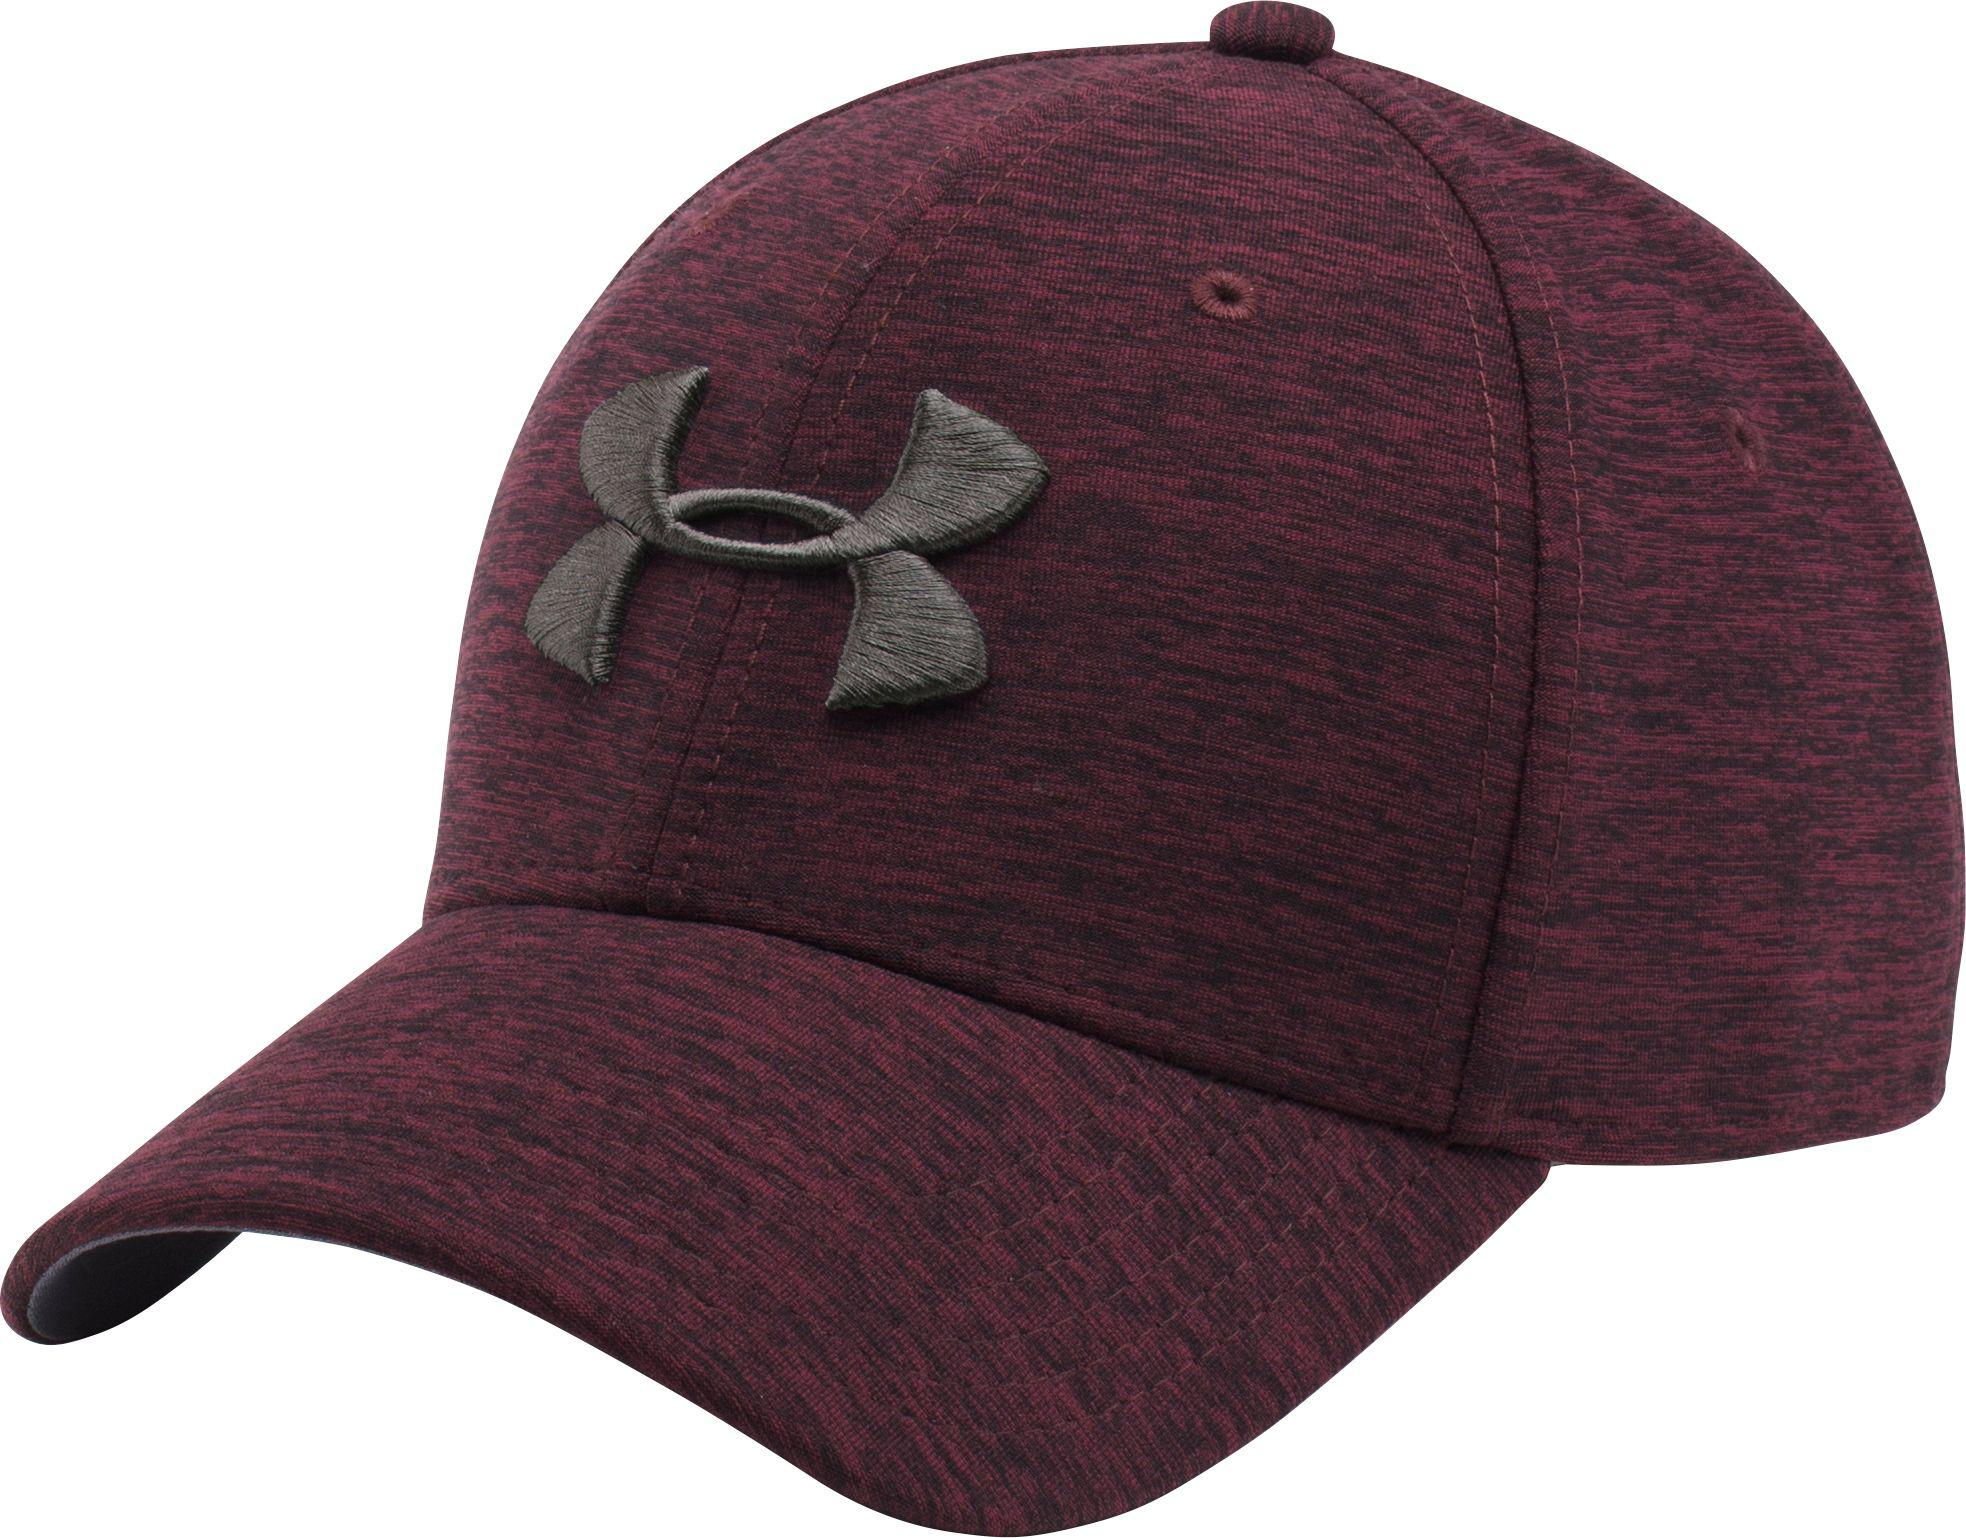 254cc546d66 Lyst - Under Armour Twist Print Tech Closer Hat in Purple for Men